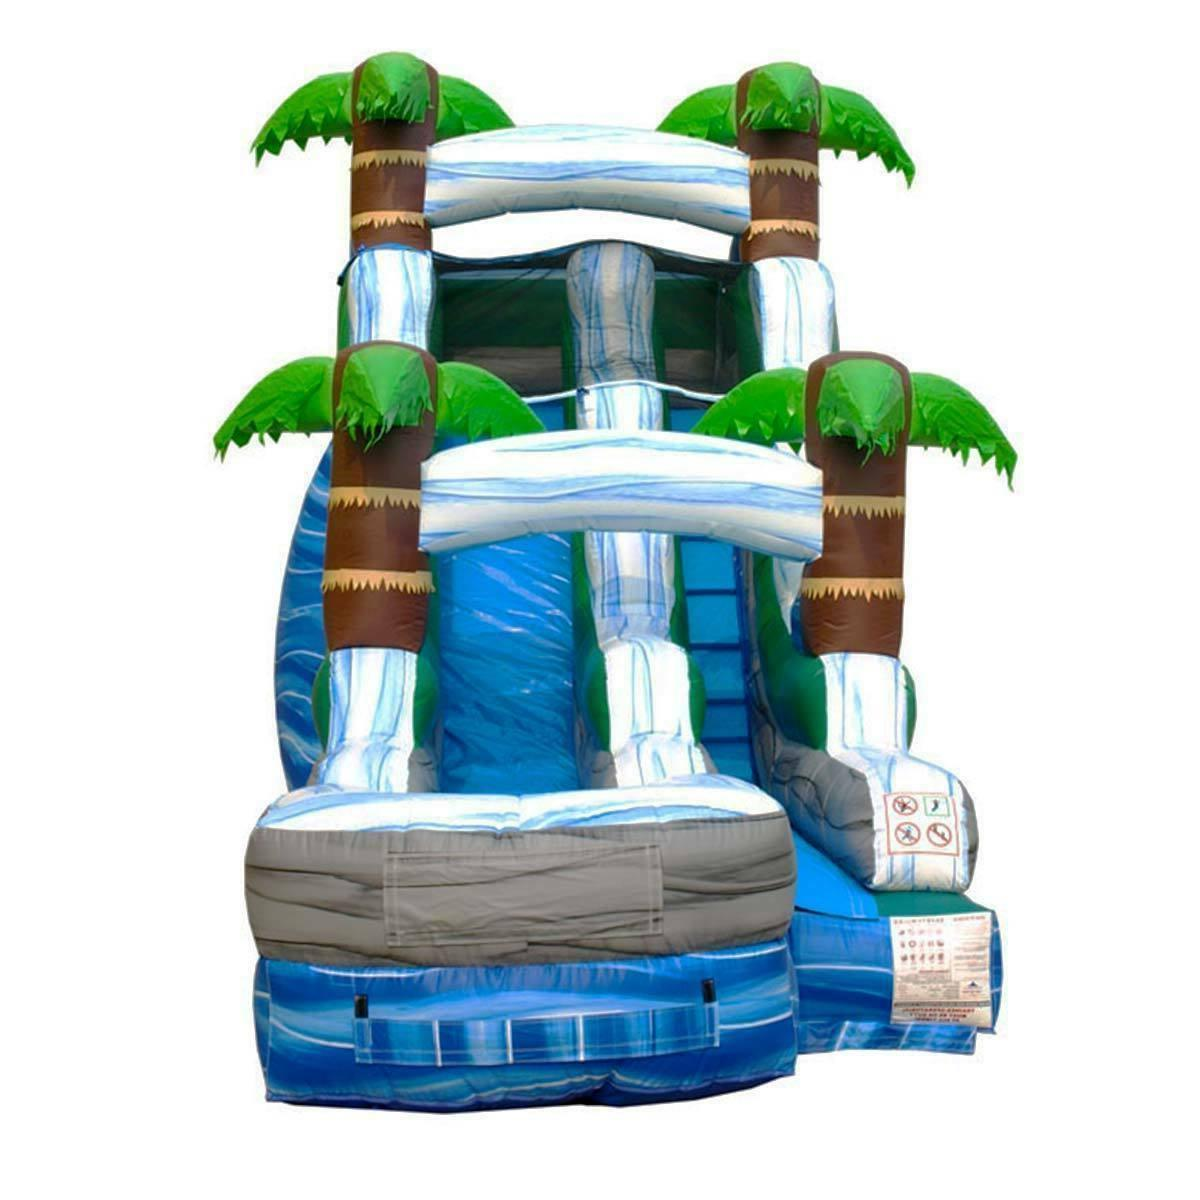 15'H Tropical Commercial Kids Backyard Slide Jumper With Blower